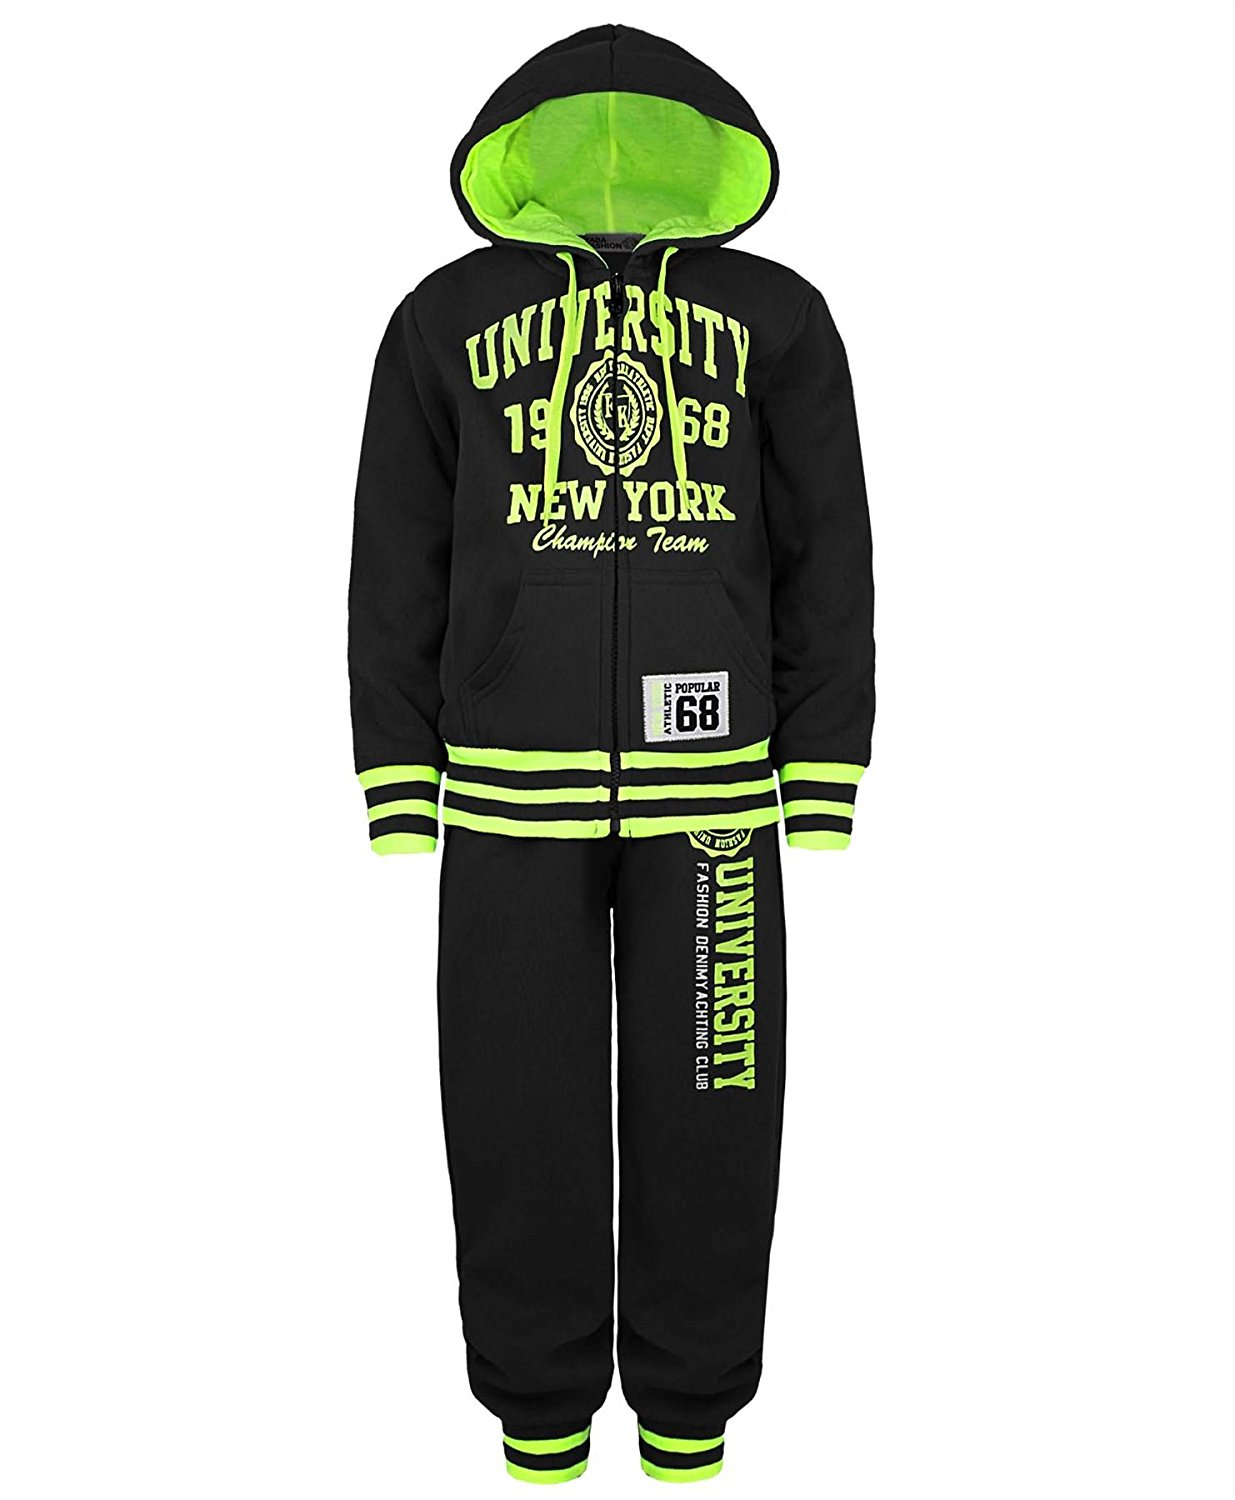 Kids Boys Girls Tracksuit Contrast Set Full Sleeve Zipper Hoodie Fleece Bottoms Top Jogging Jogger Gym School Clothing